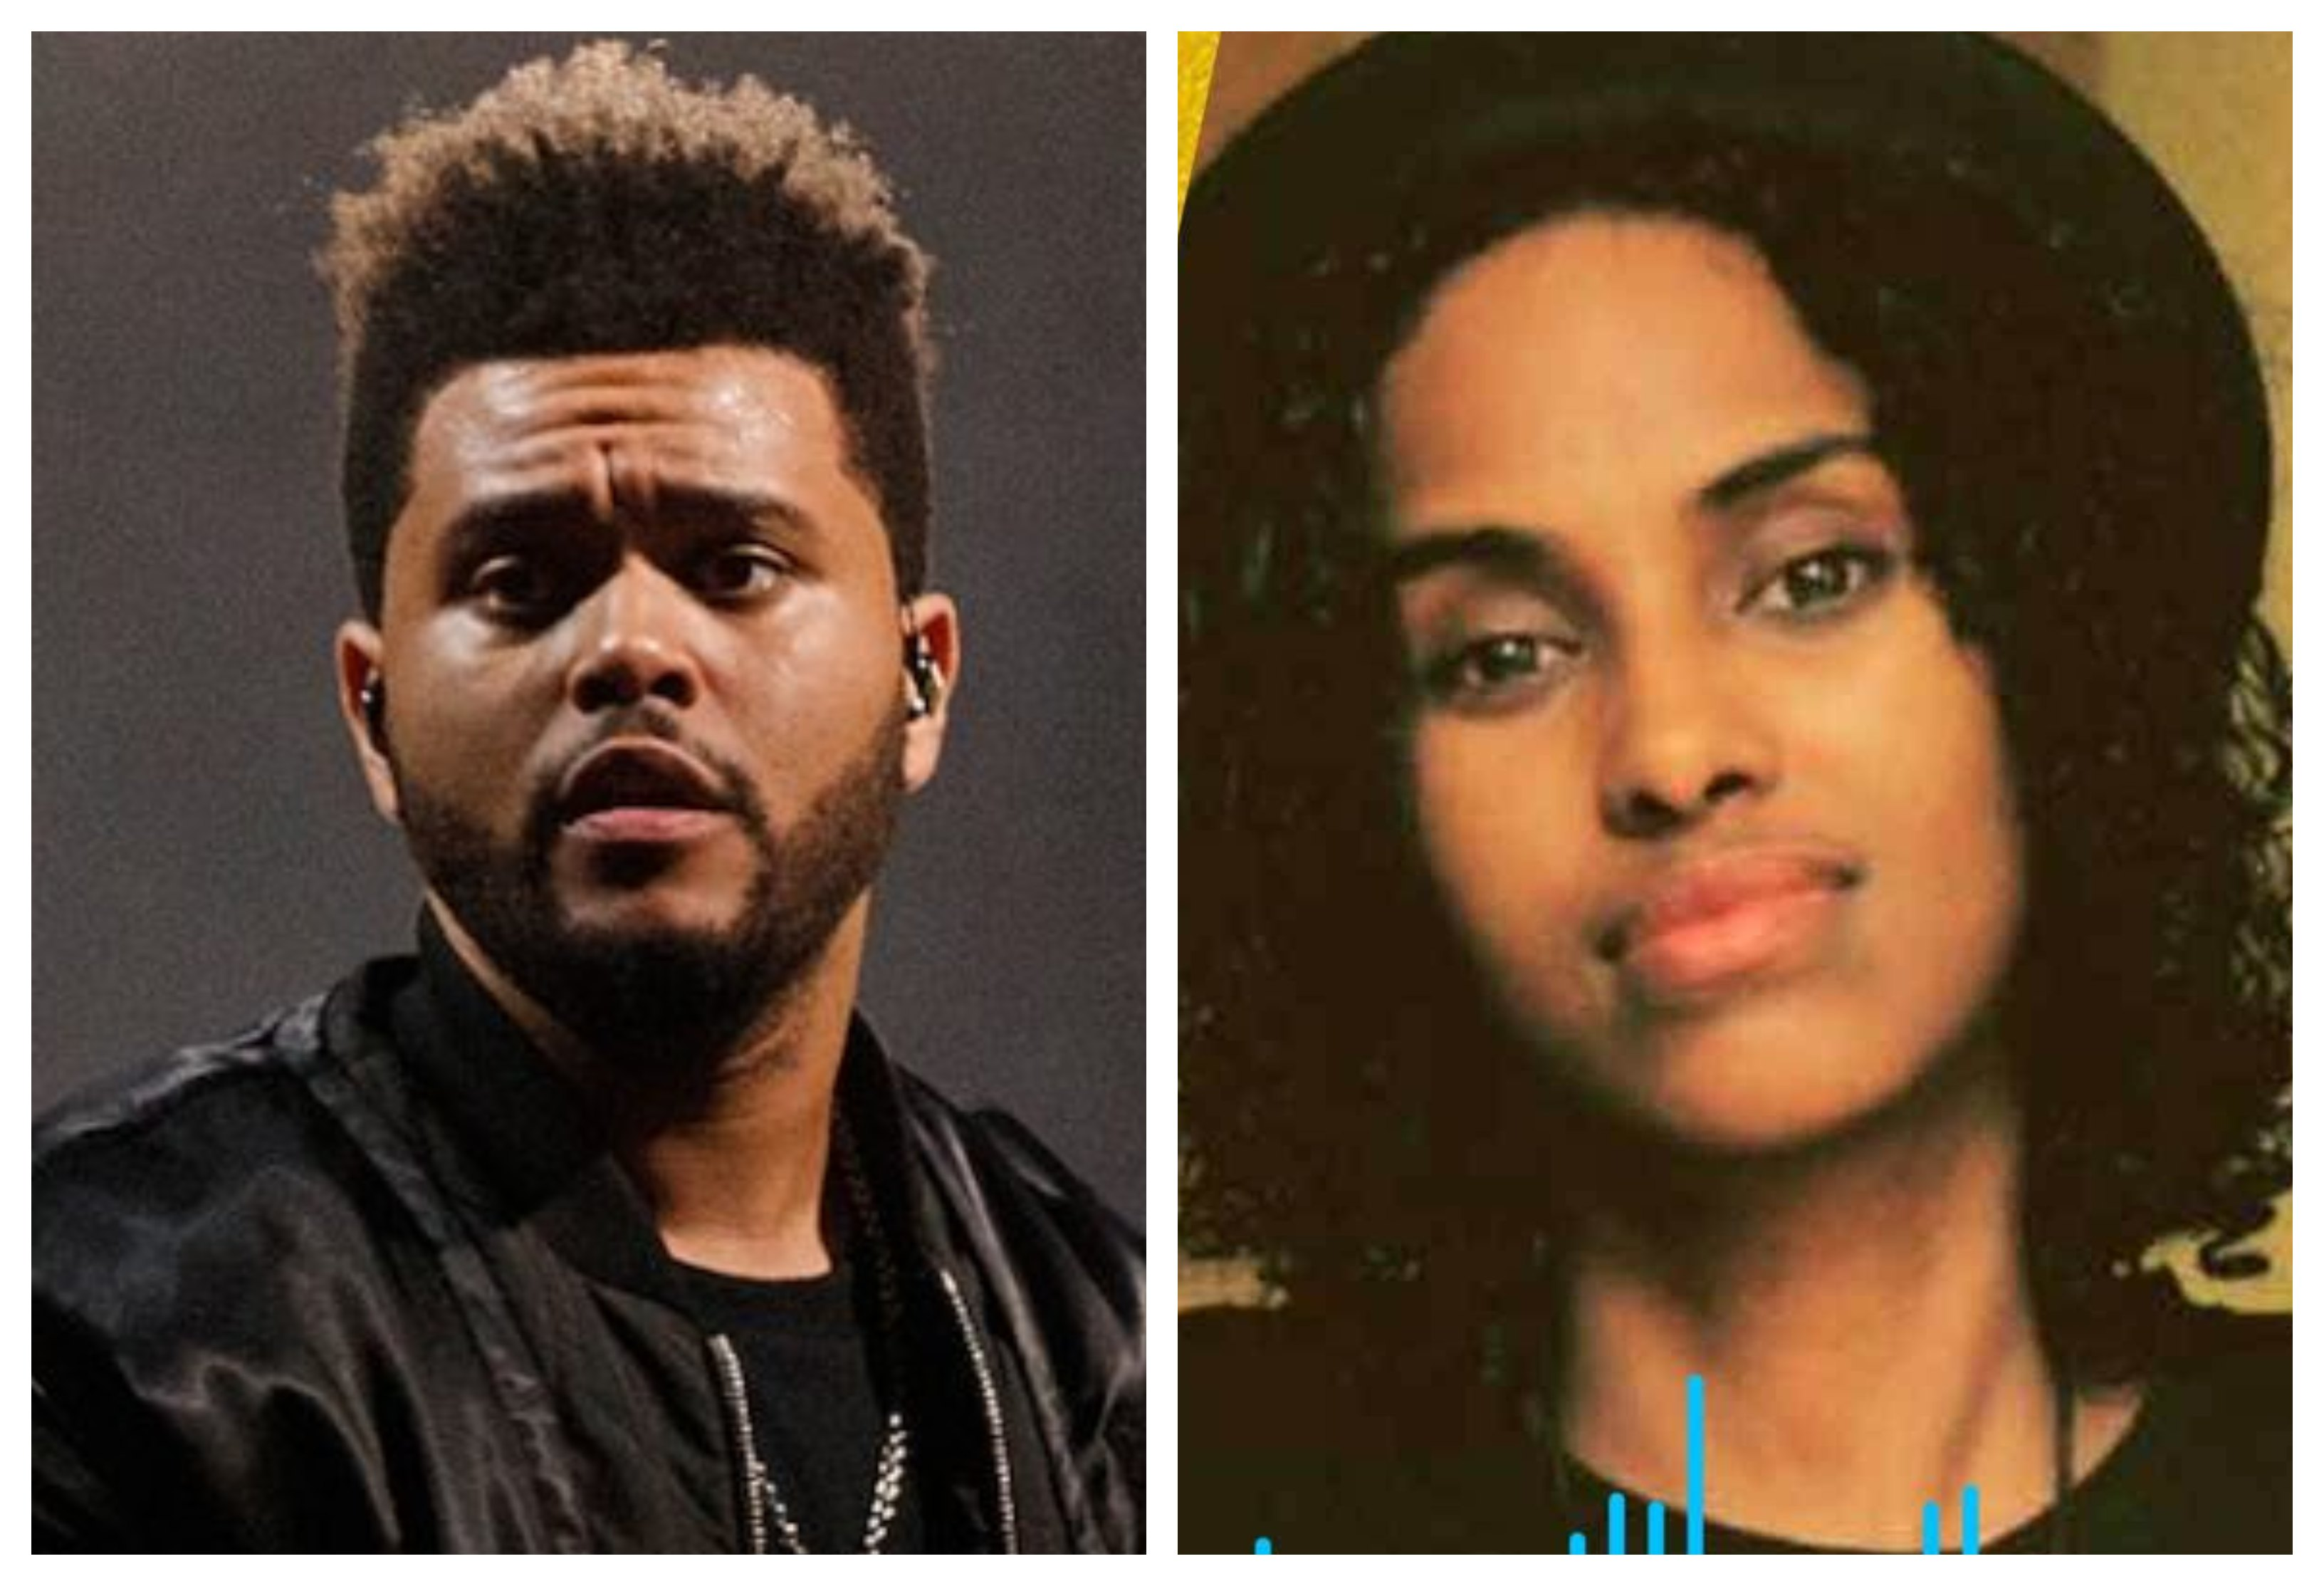 American Singer, The Weeknd, Sued For Alleged Plagiarism Of 'Starboy'